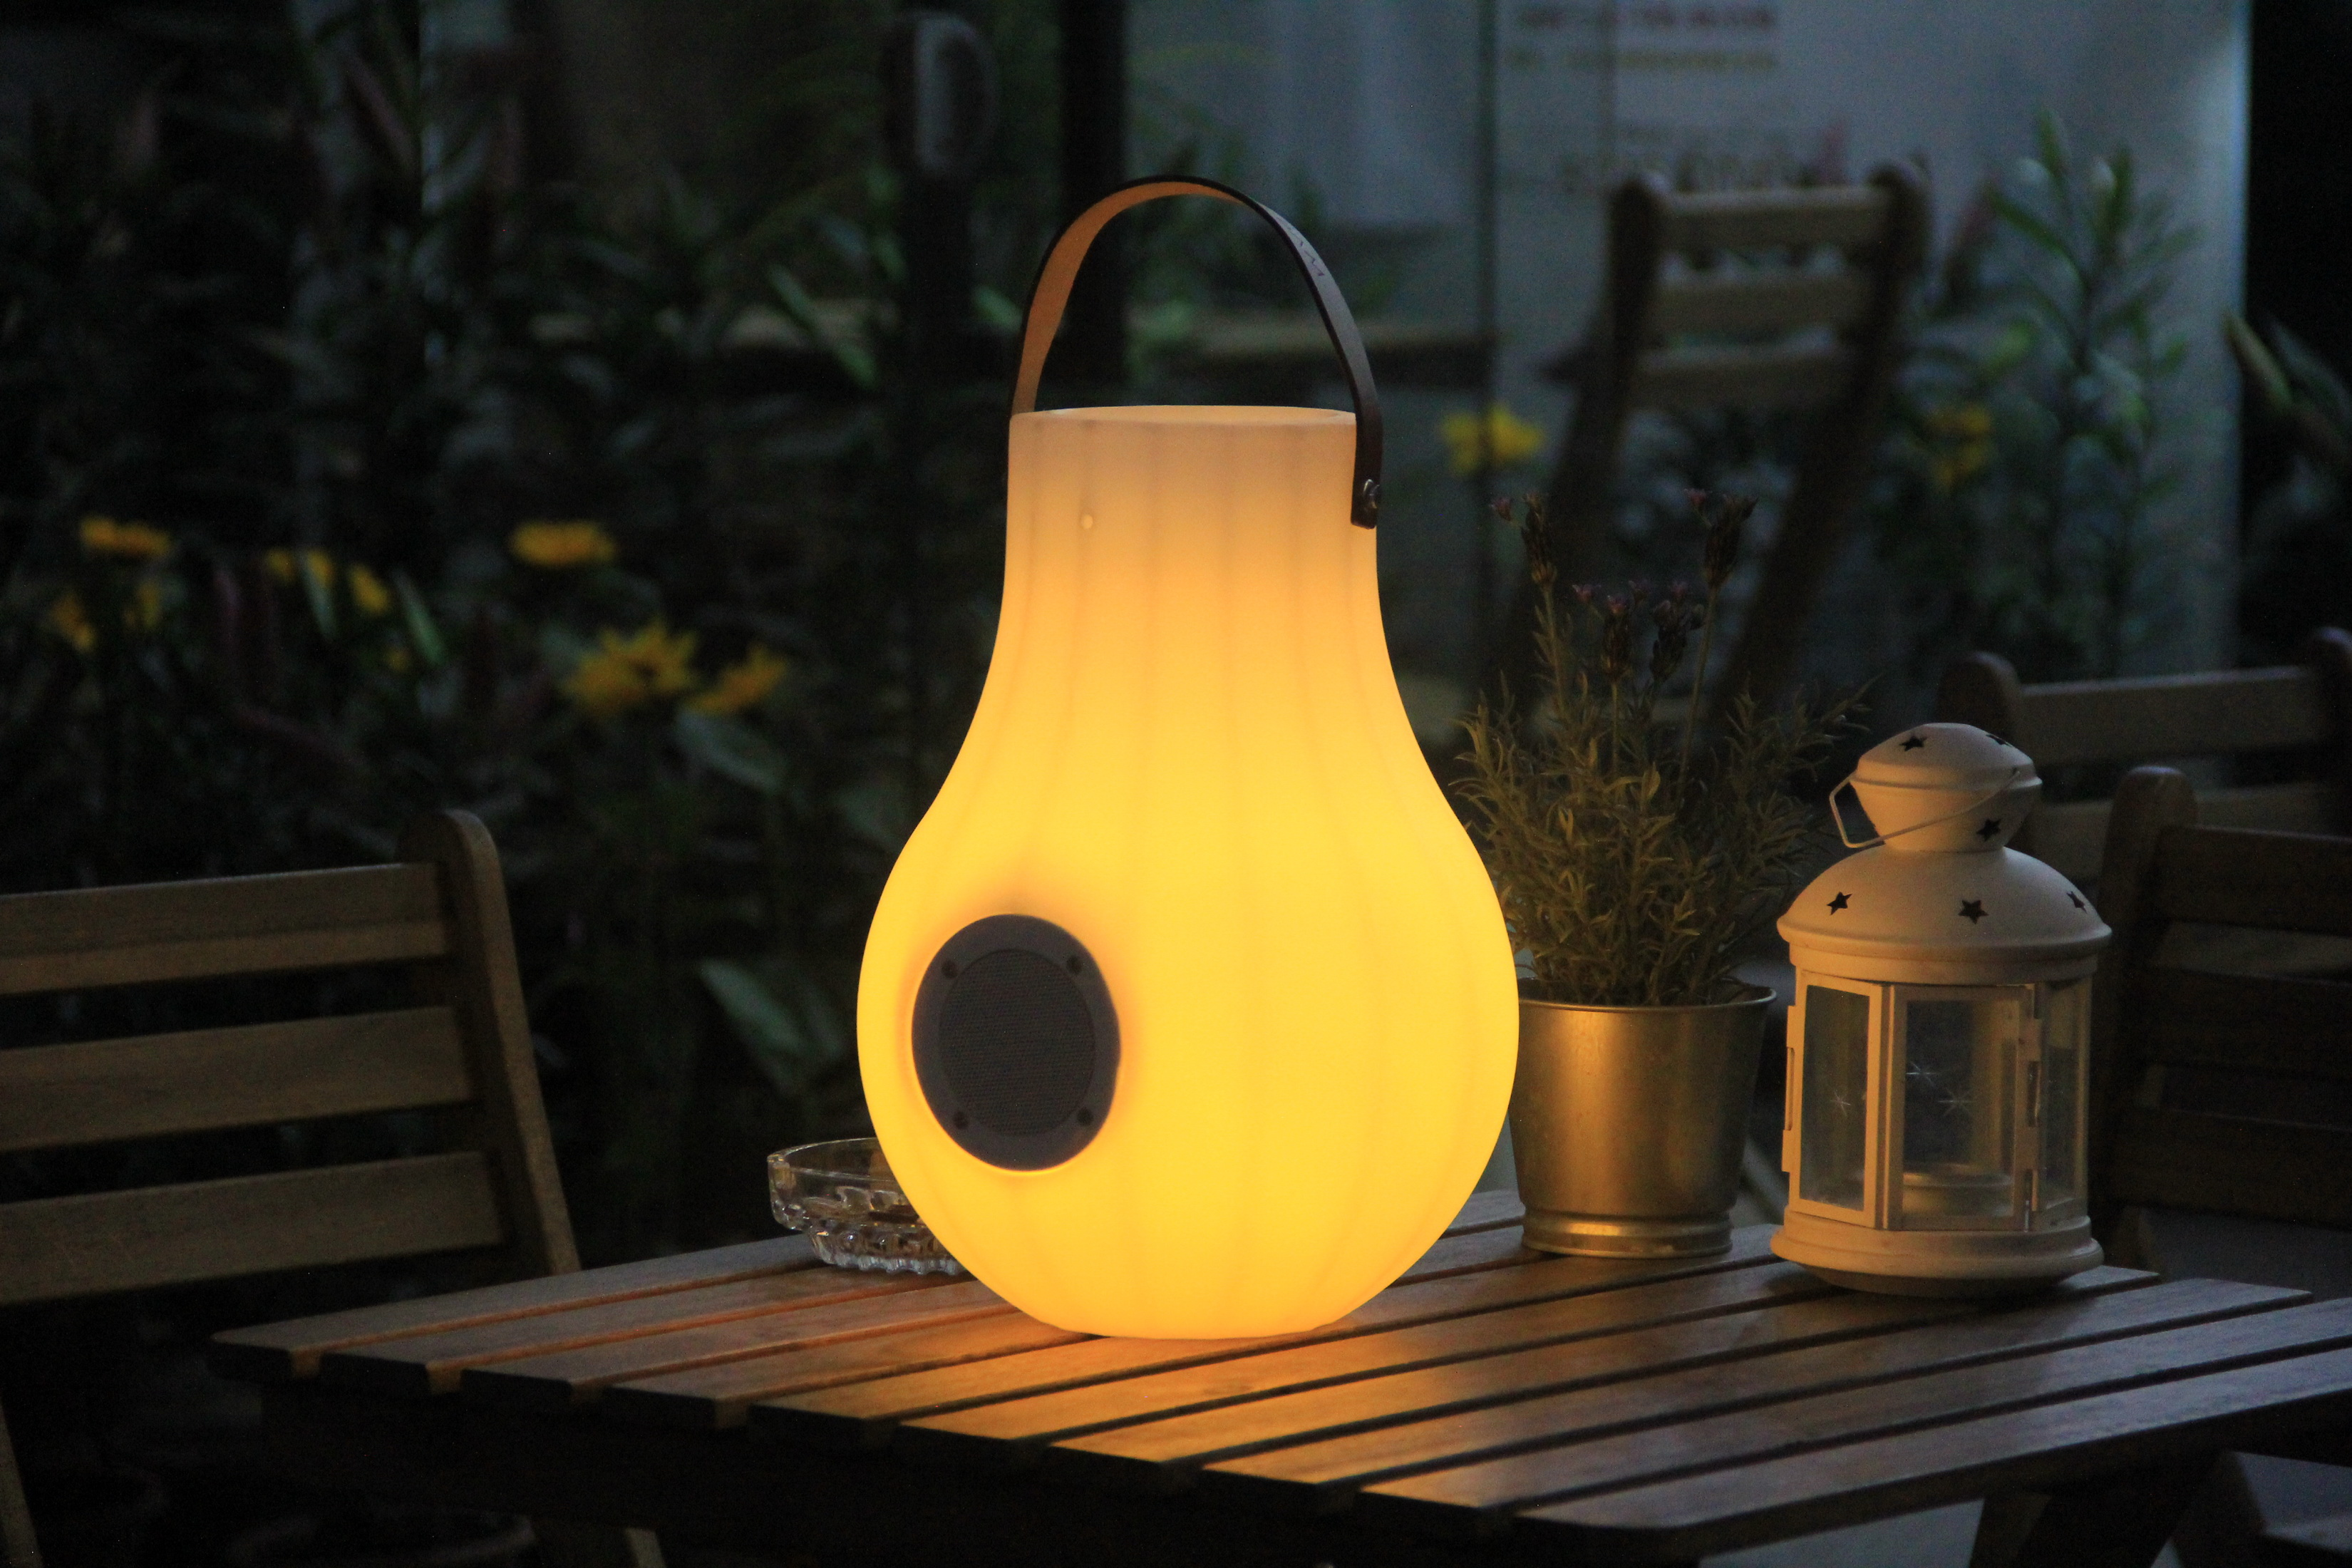 Led Lamp Bluetooth Speaker with Bucket